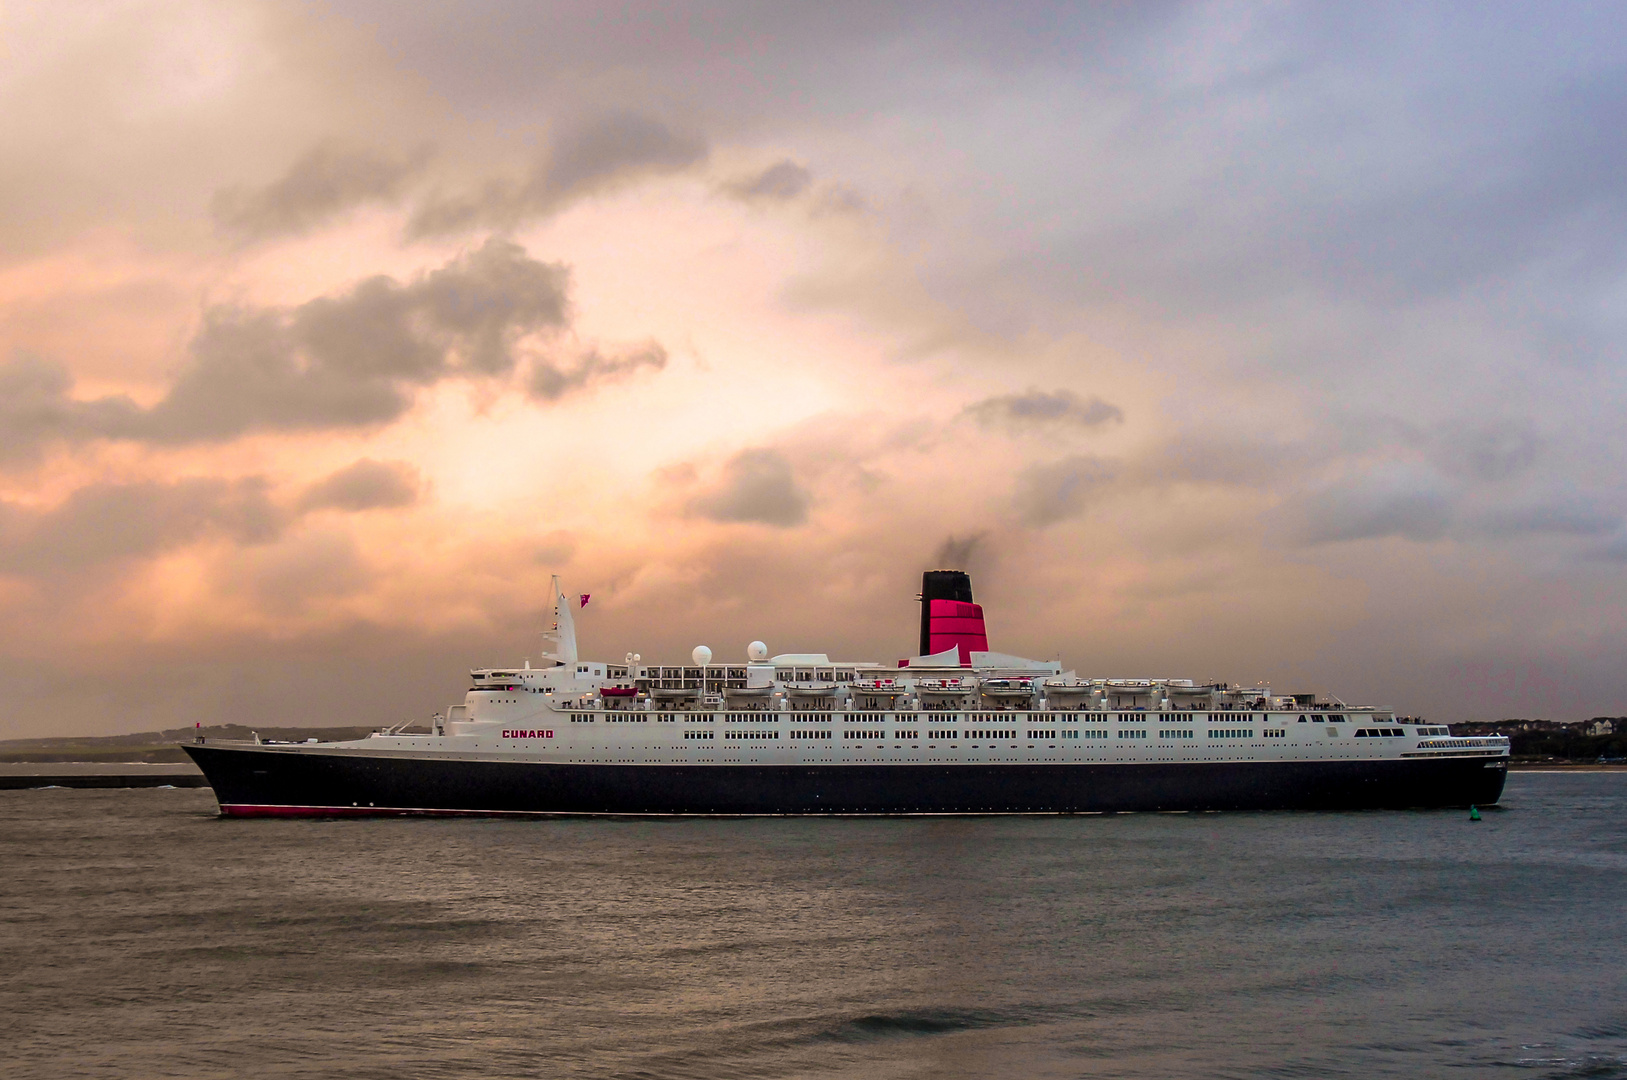 'QE2 Still on thr river Tyne'